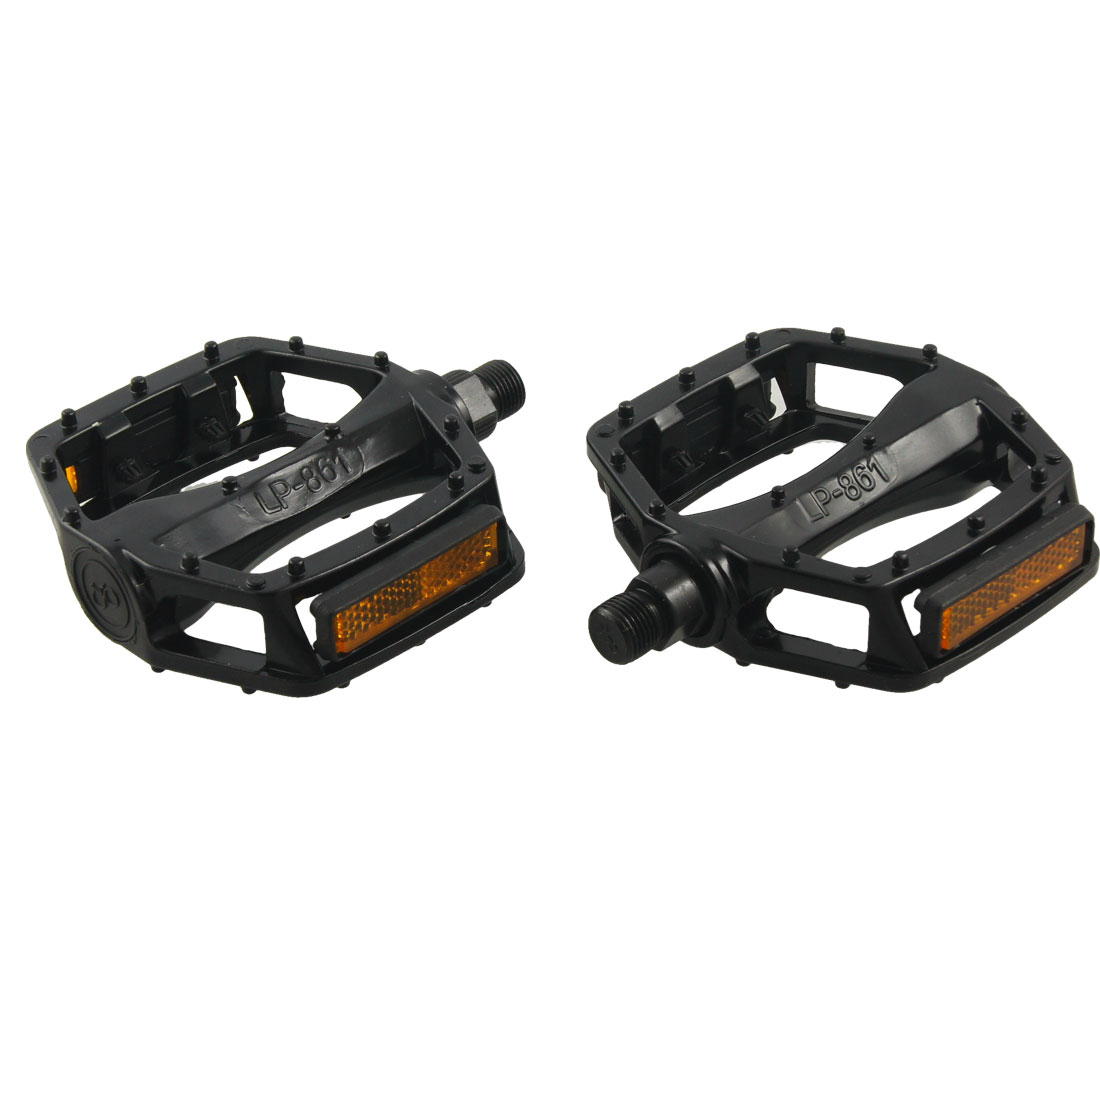 Bike Bicycles Pair Black Yellow Metal 14mm Axle Platform Pedals